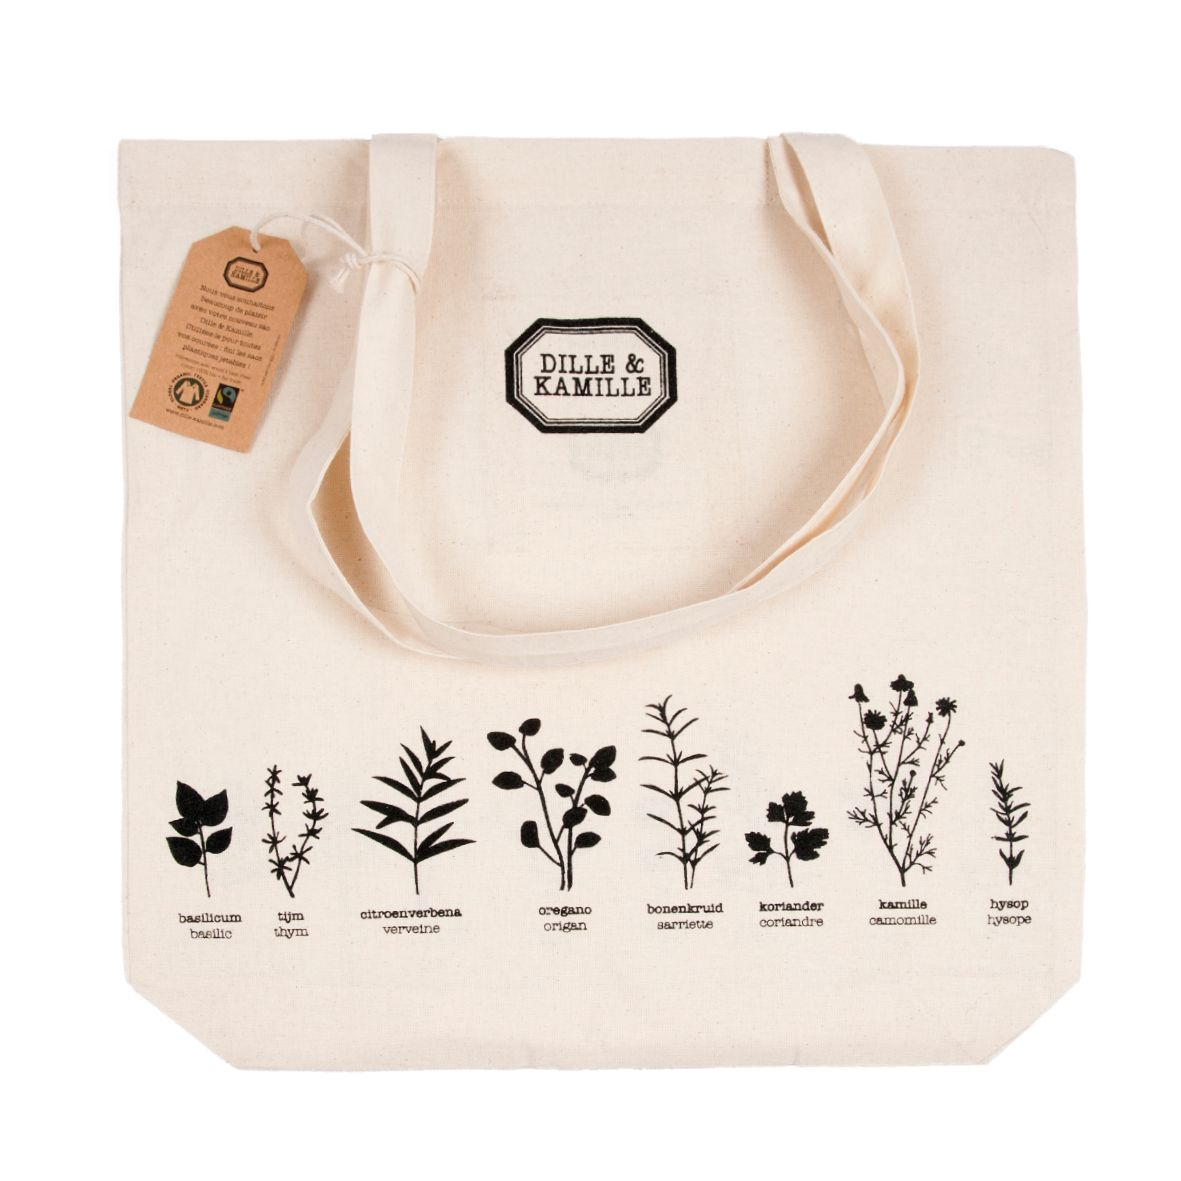 Sac dille kamille herbes aromatiques dille kamille des pommes des poires - Herbes aromatiques cuisine liste ...